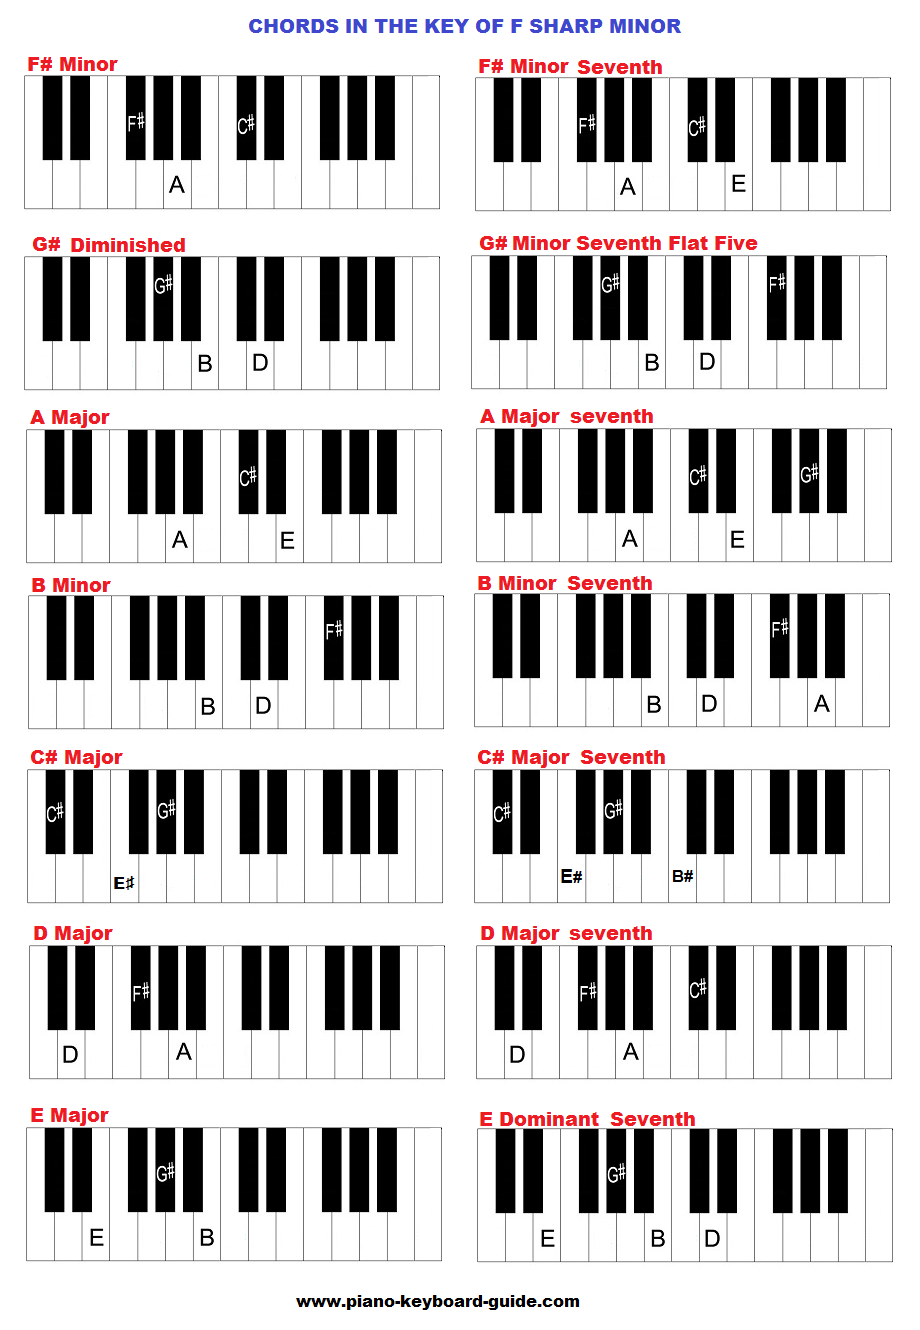 Key of F sharp minor, chords